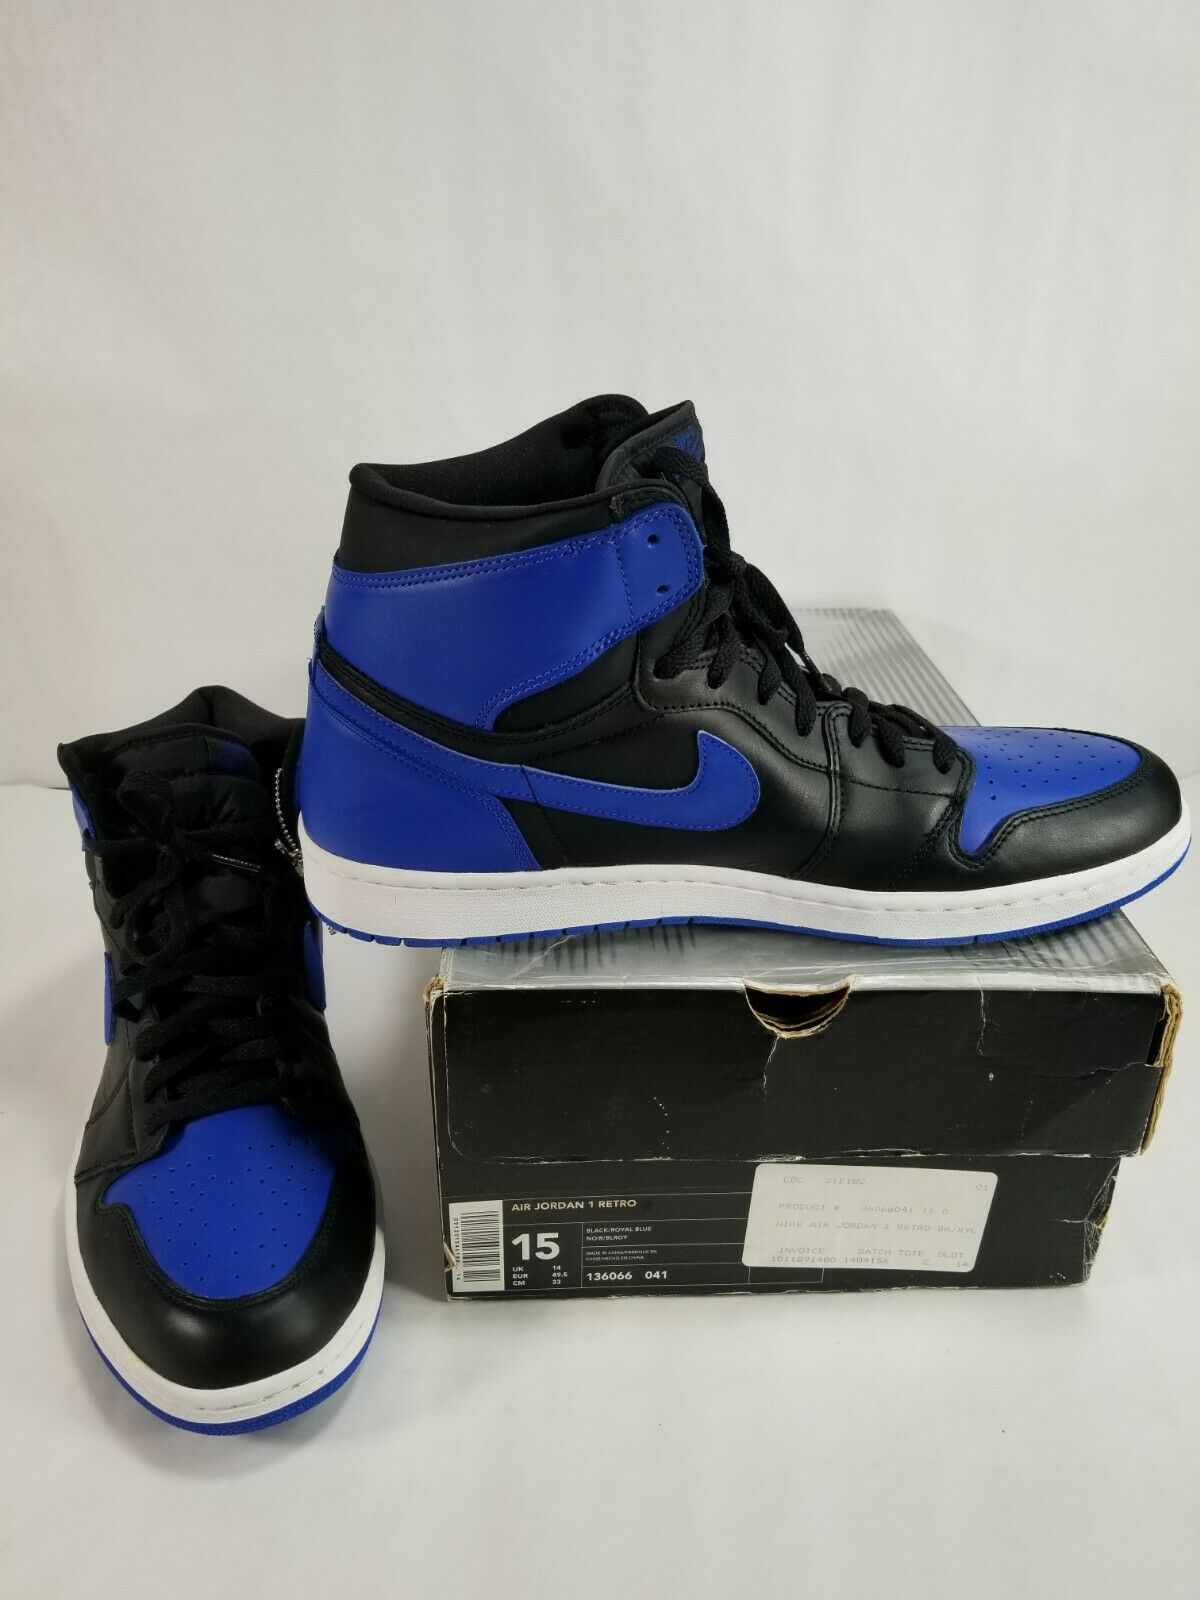 Nike Air Jordan 1 Retro Royal bluee 2001 Size 15 136066-041 NEW IN BOX FREE SHIP